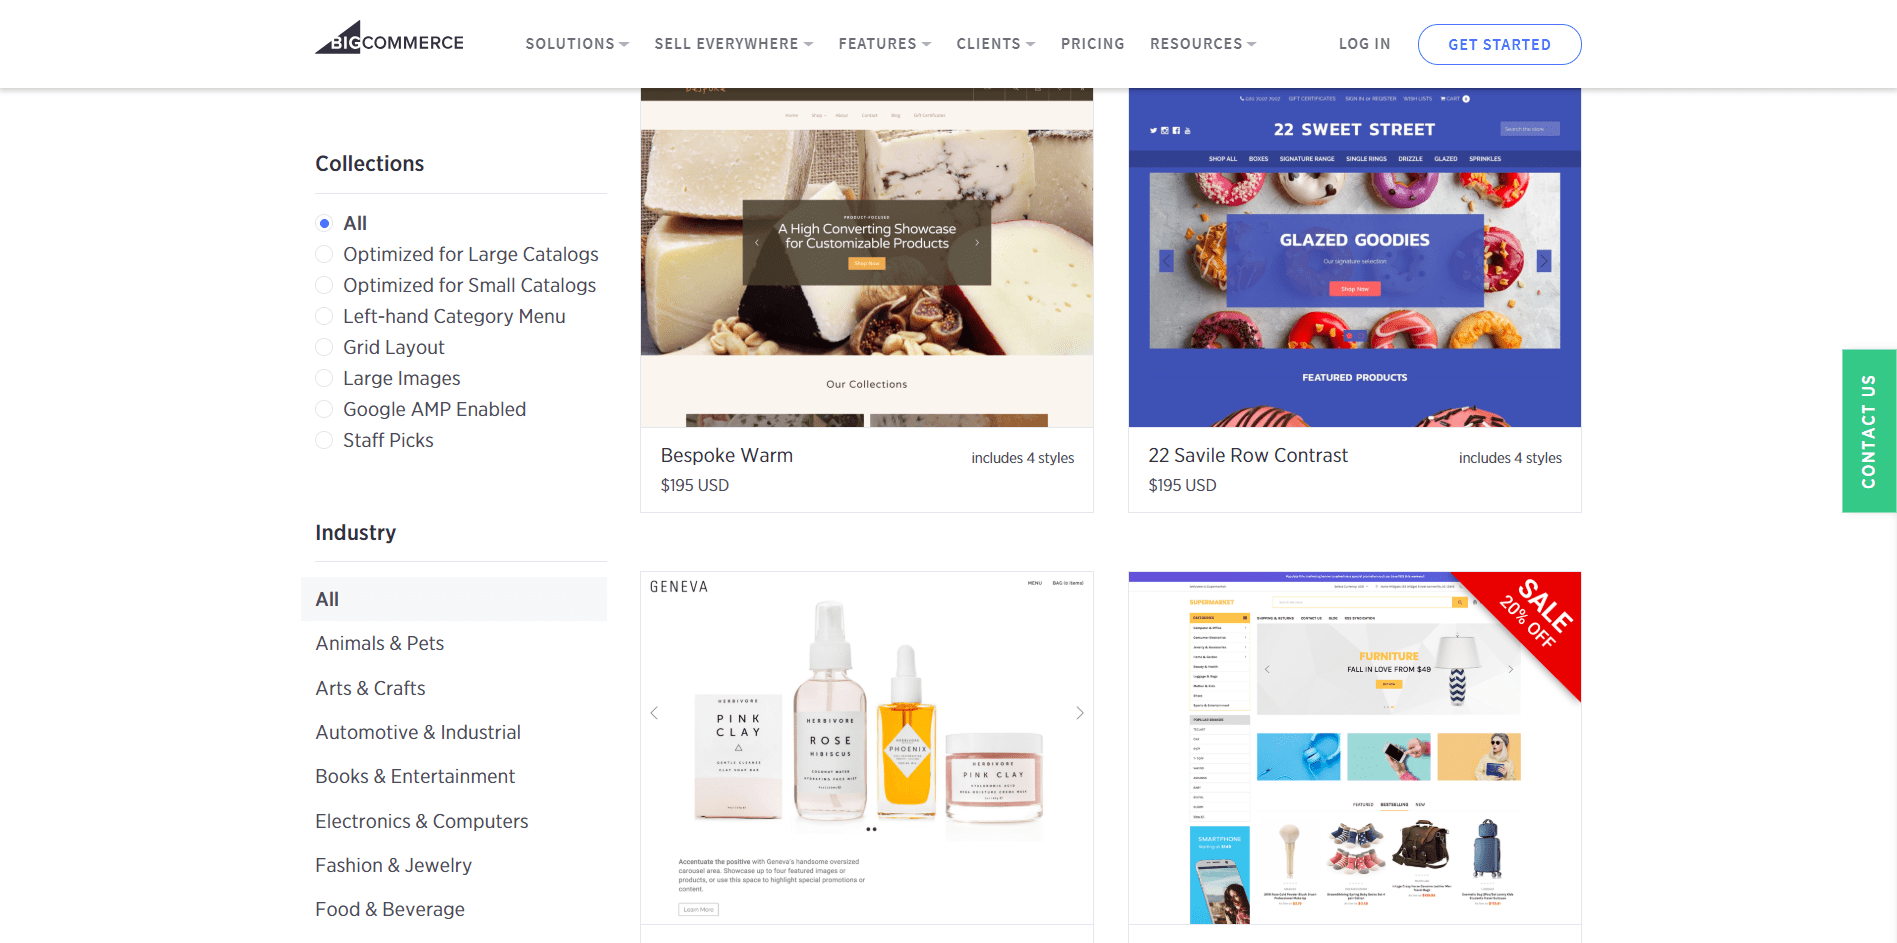 5 Things You Need to Know about BigCommerce Before Building Your Website